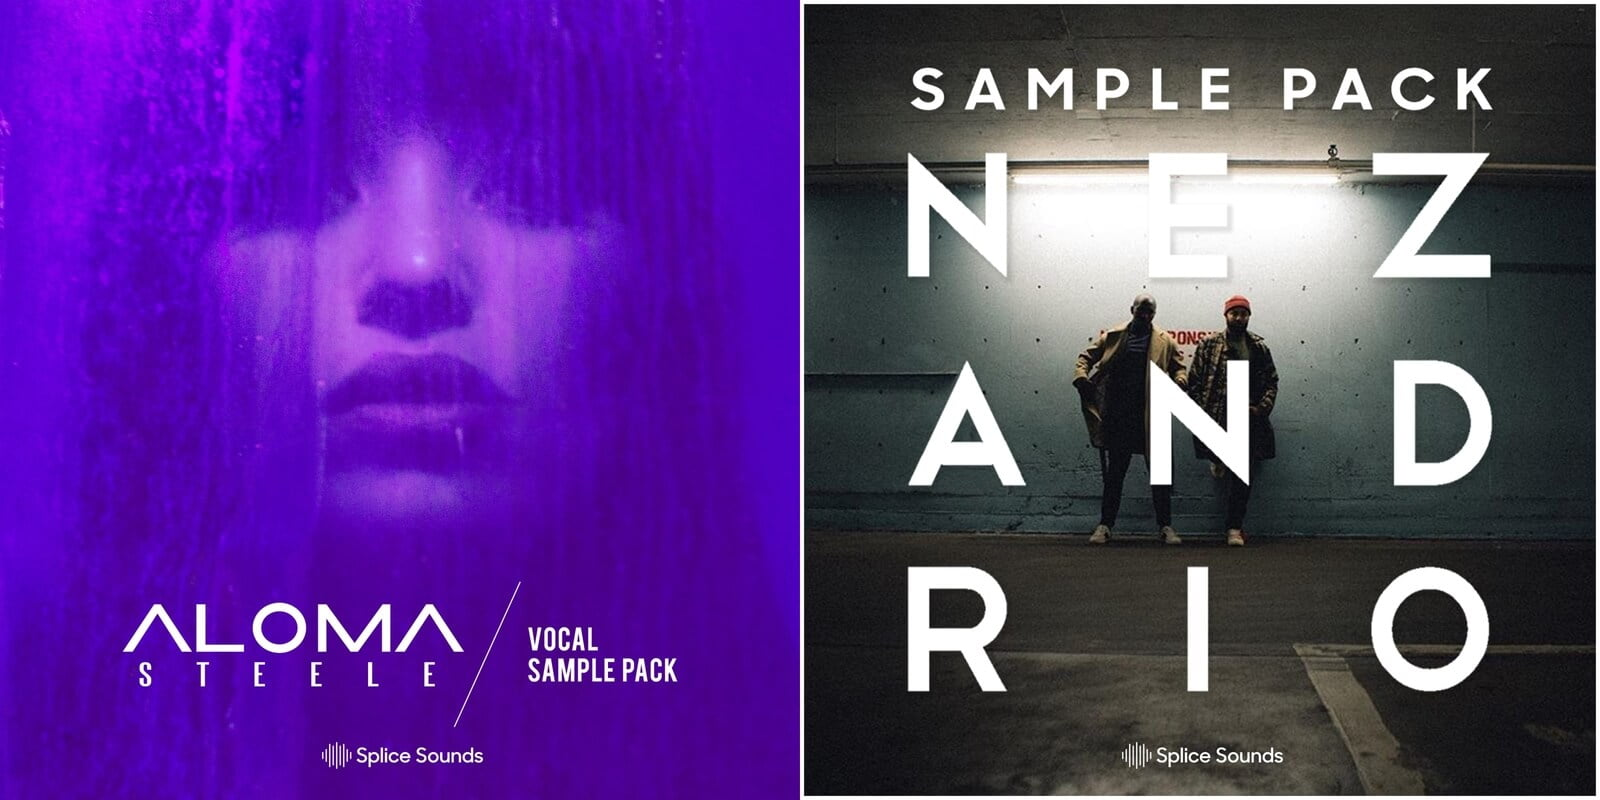 New samples from Aloma Steele & Nez and Rio at Splice Sounds